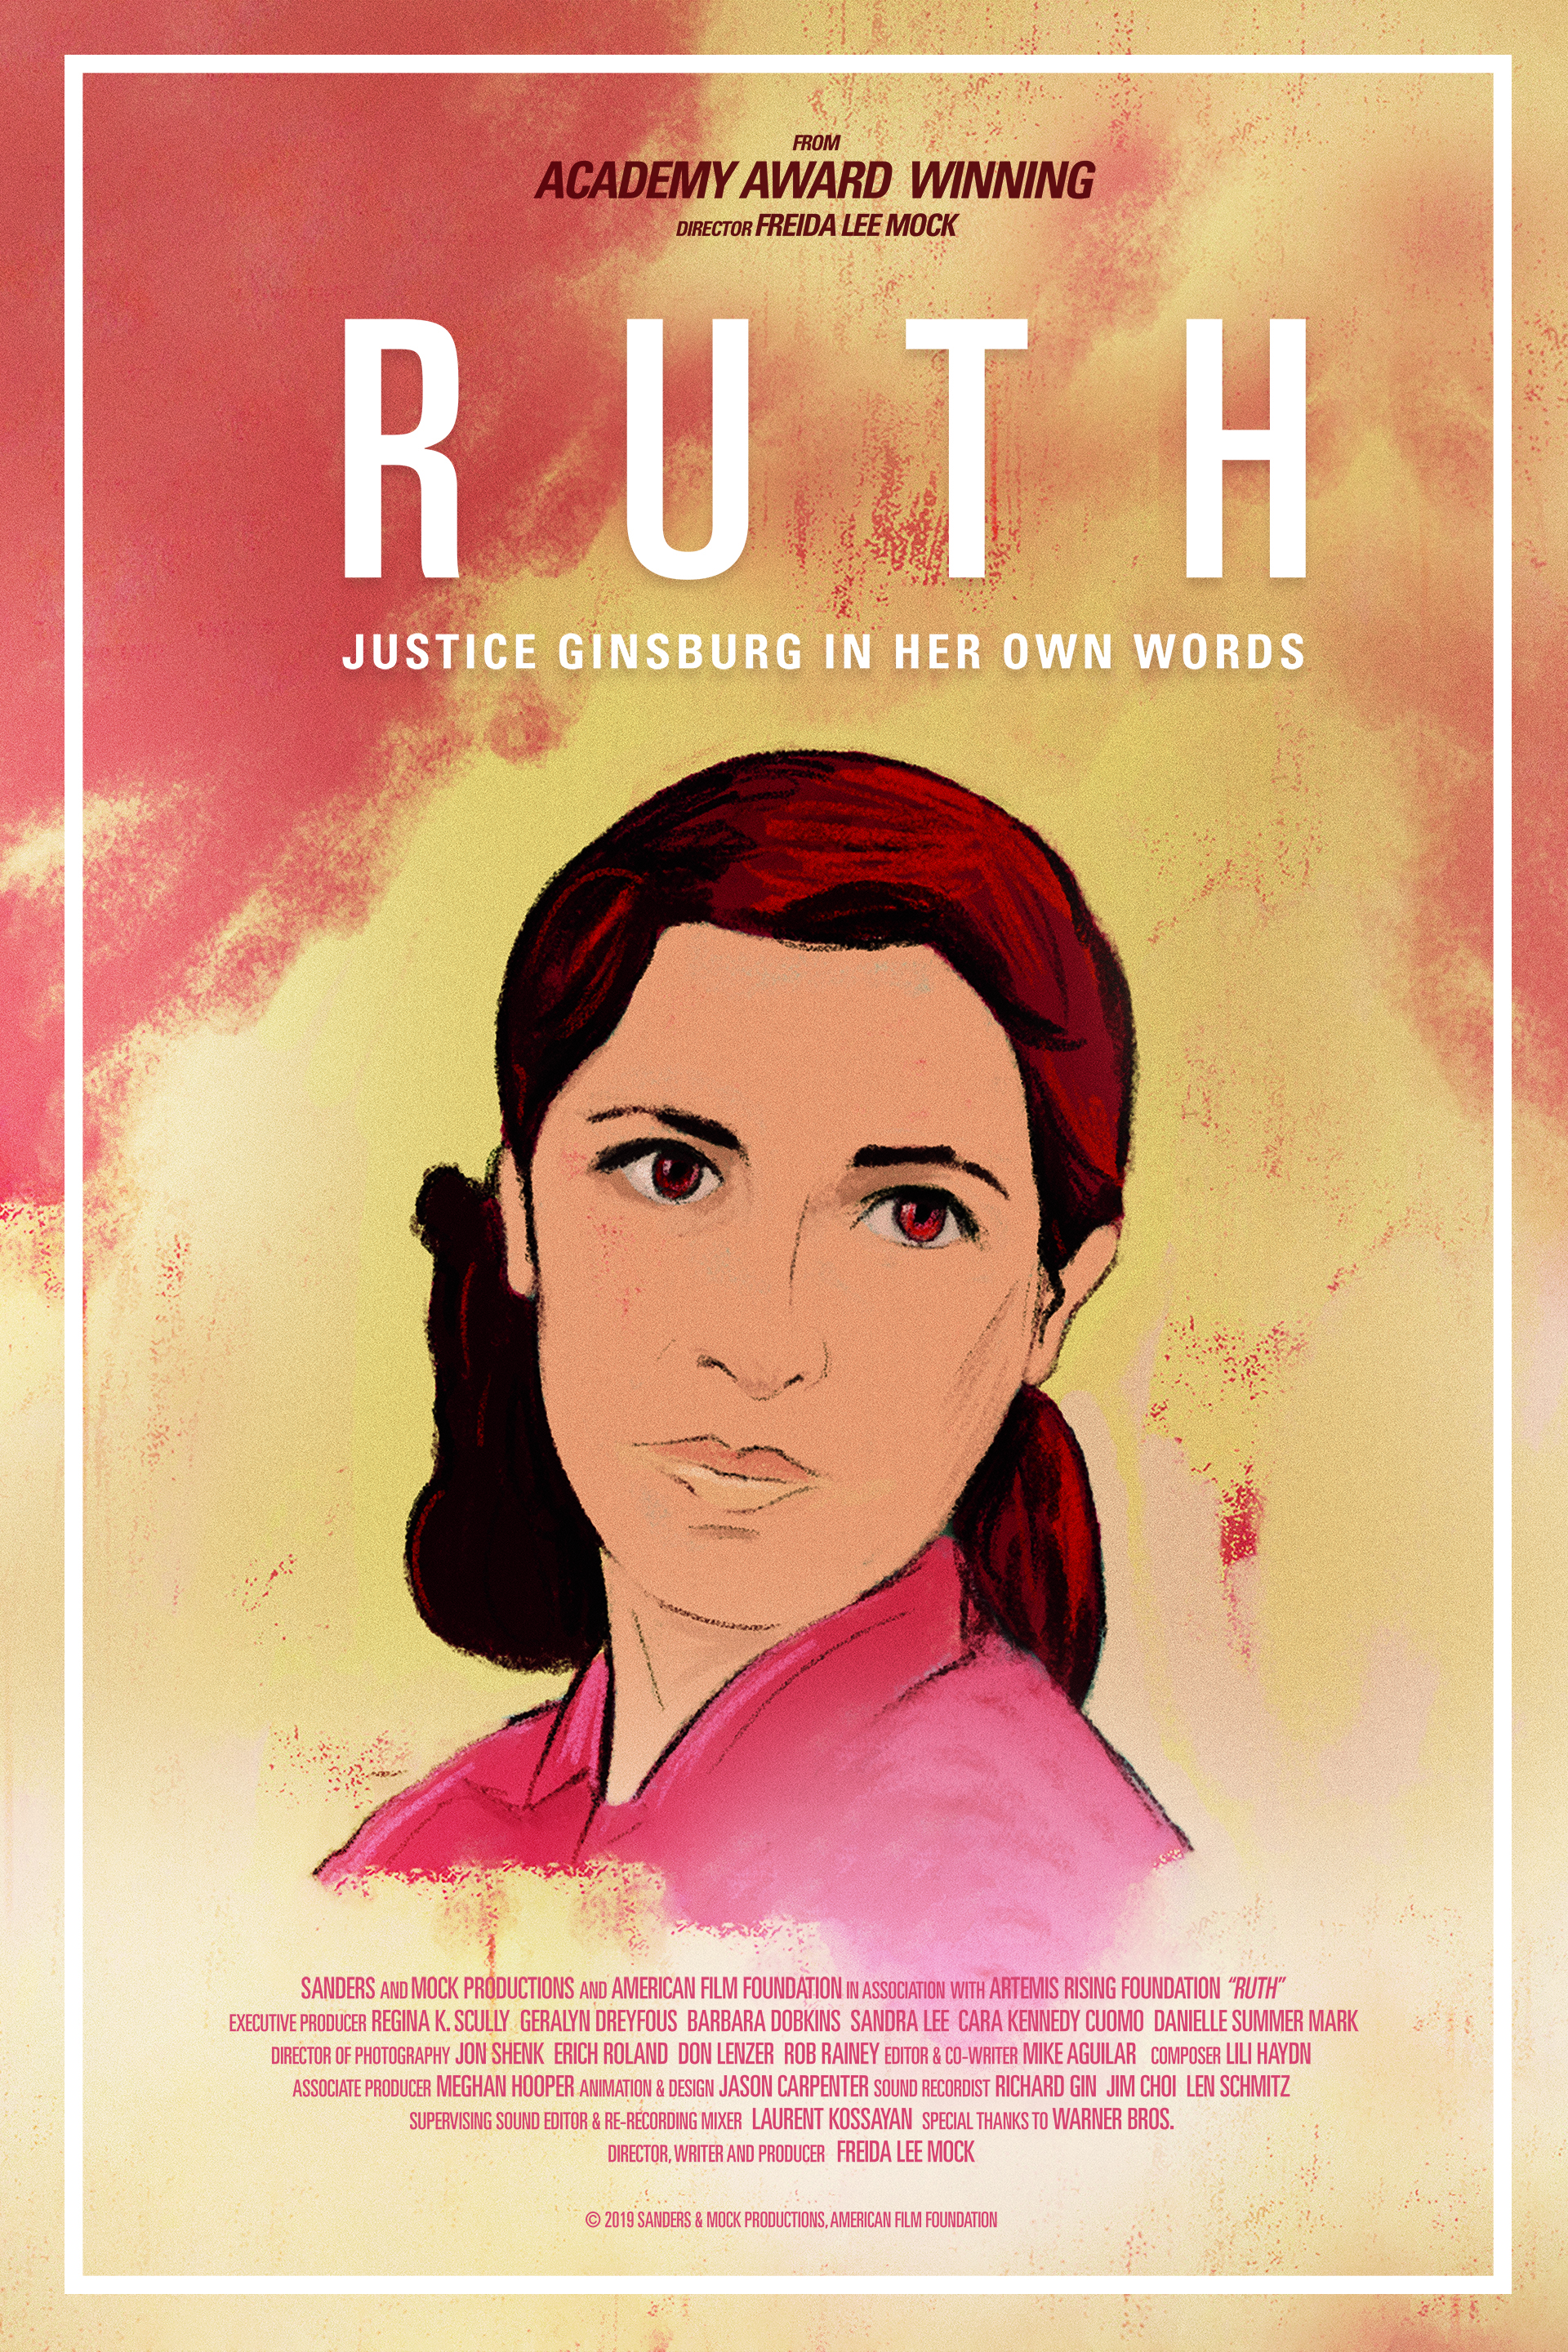 Poster for Ruth – Justice Ginsburg in Her Own Words